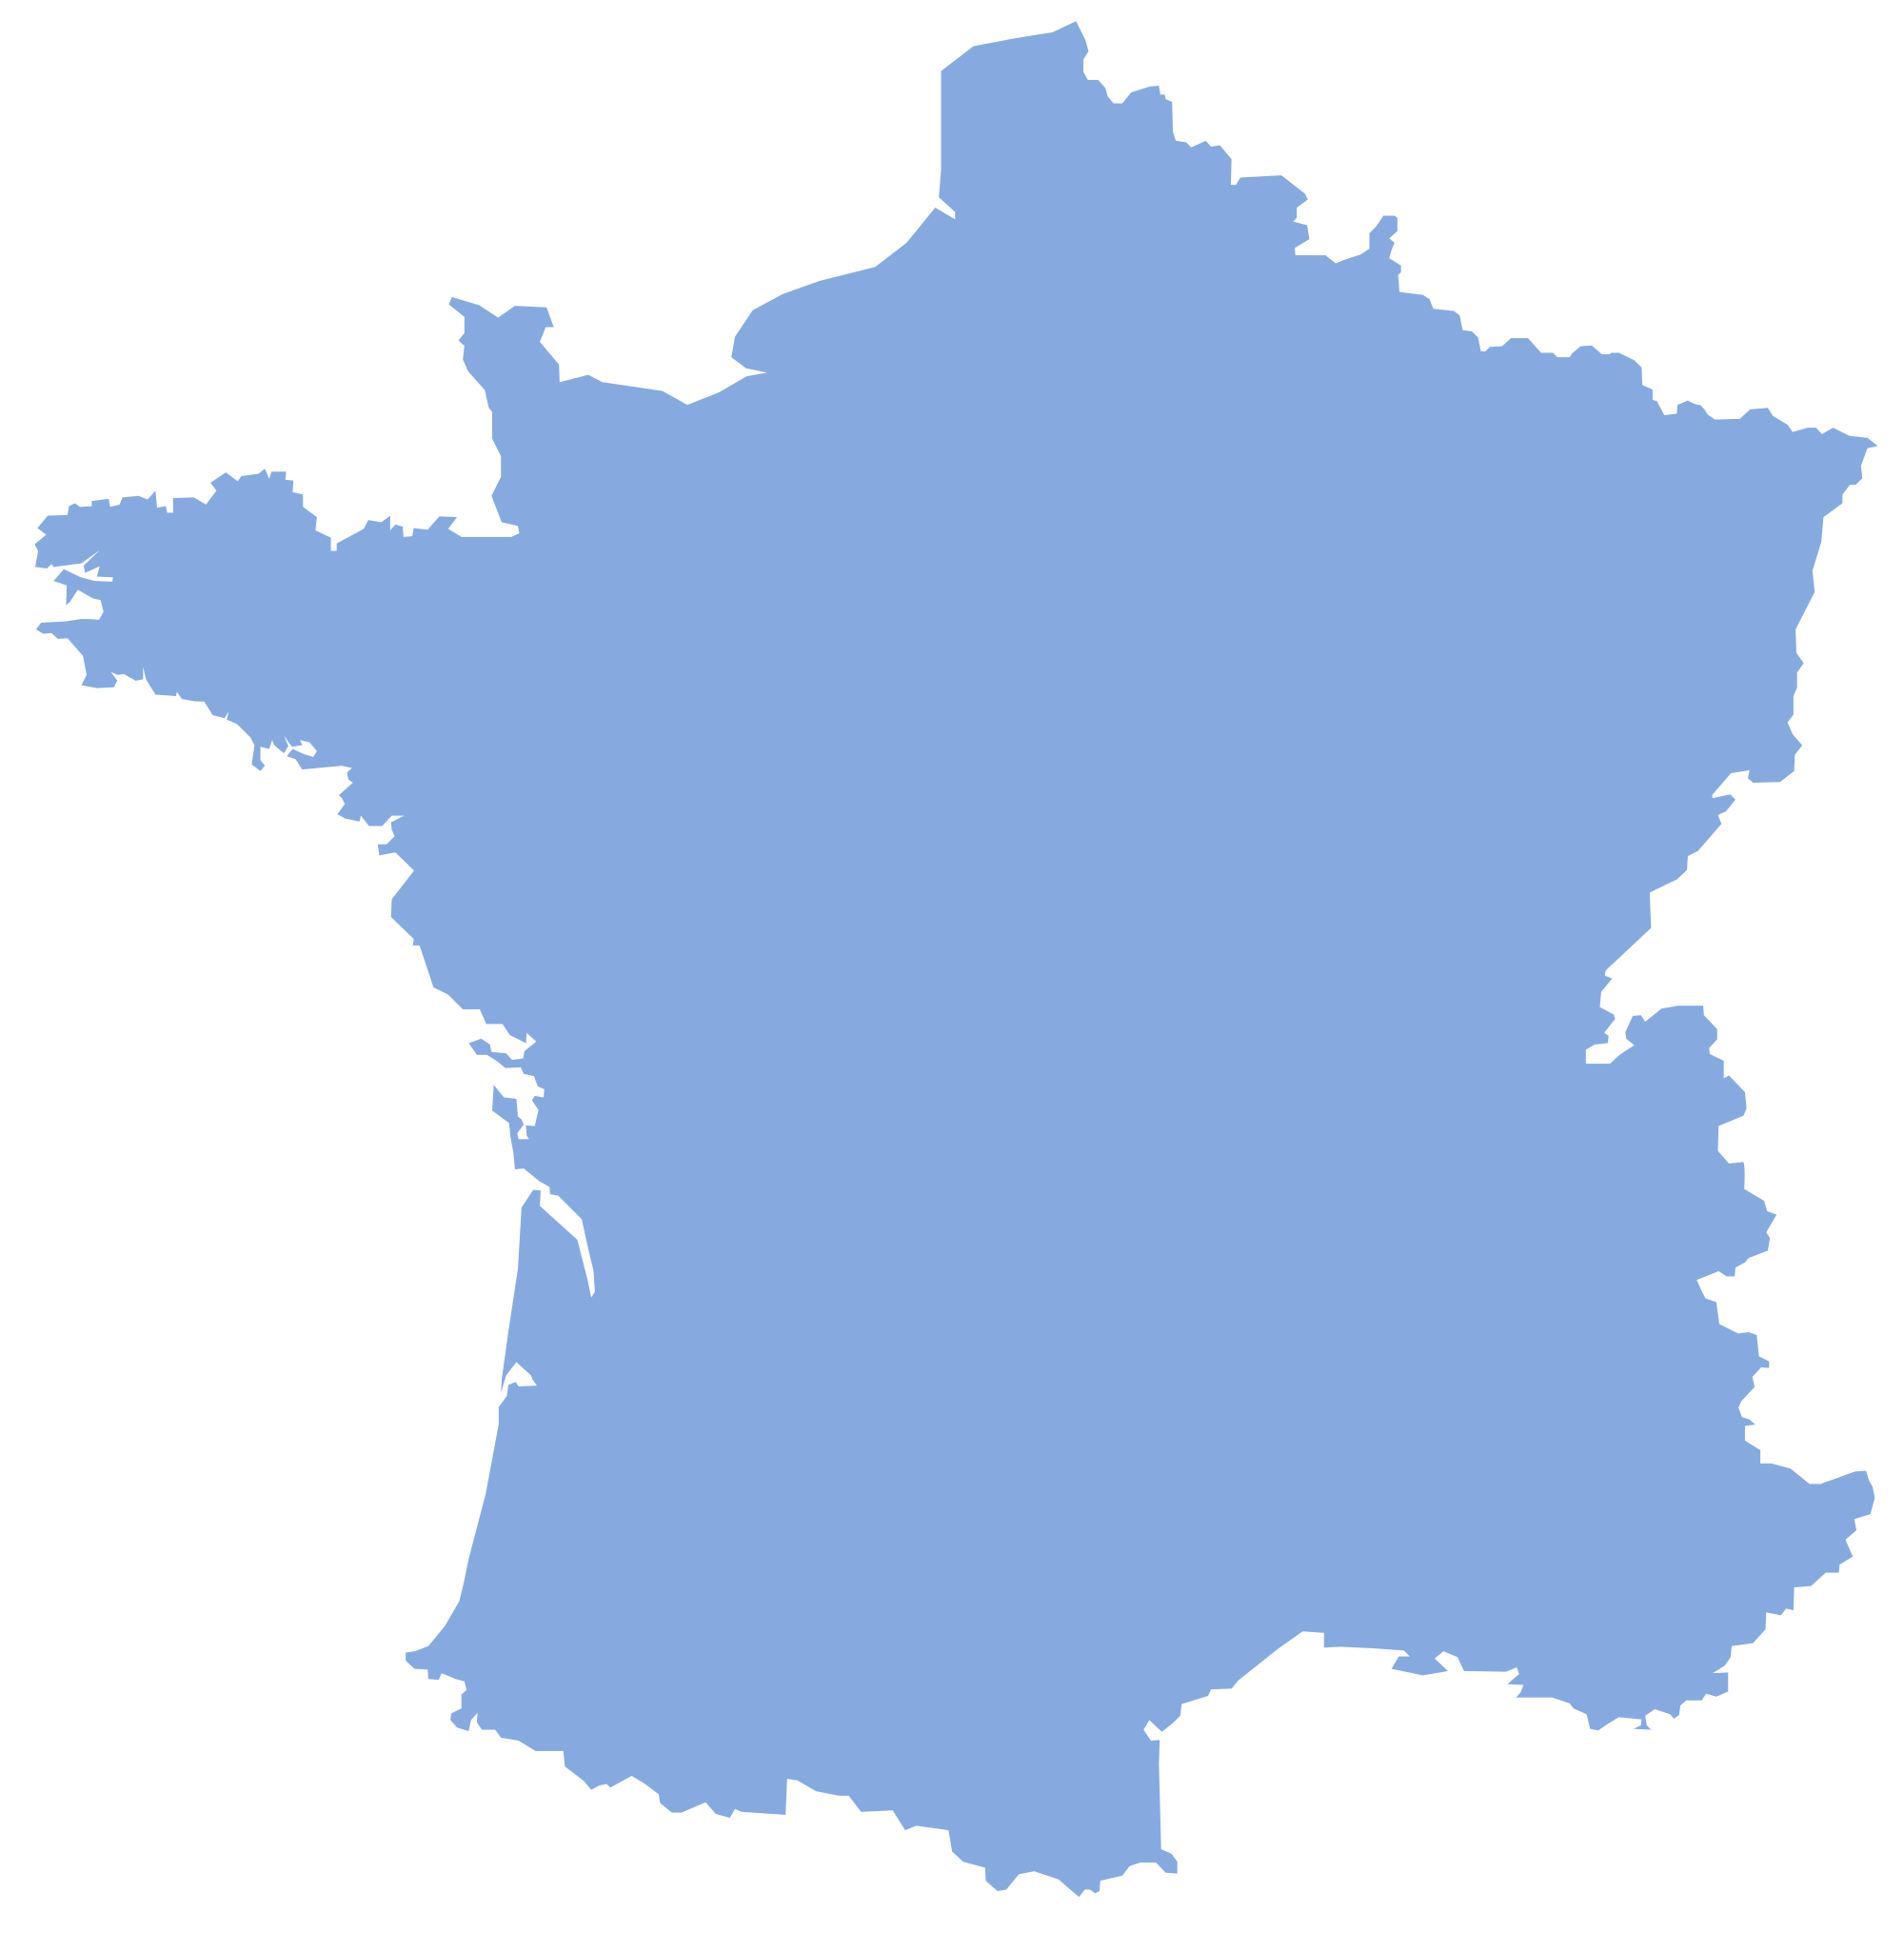 Blank France Map Mapsofnet - France map images blank